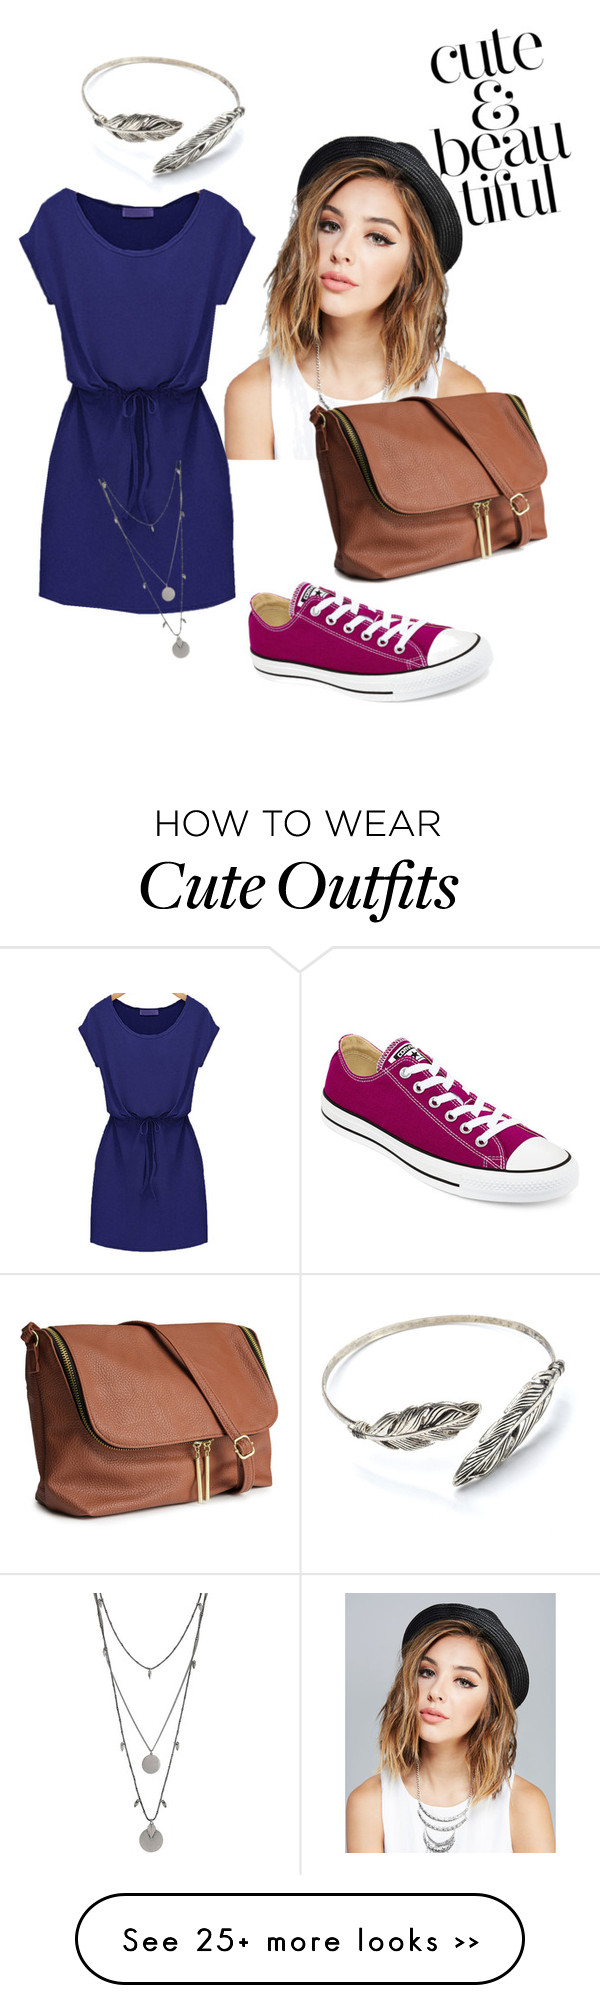 """outfit of the day - cute and beautiful"" by lil-lili on Polyvore featuring Wet Seal, H&M, Vince Camuto and Converse"